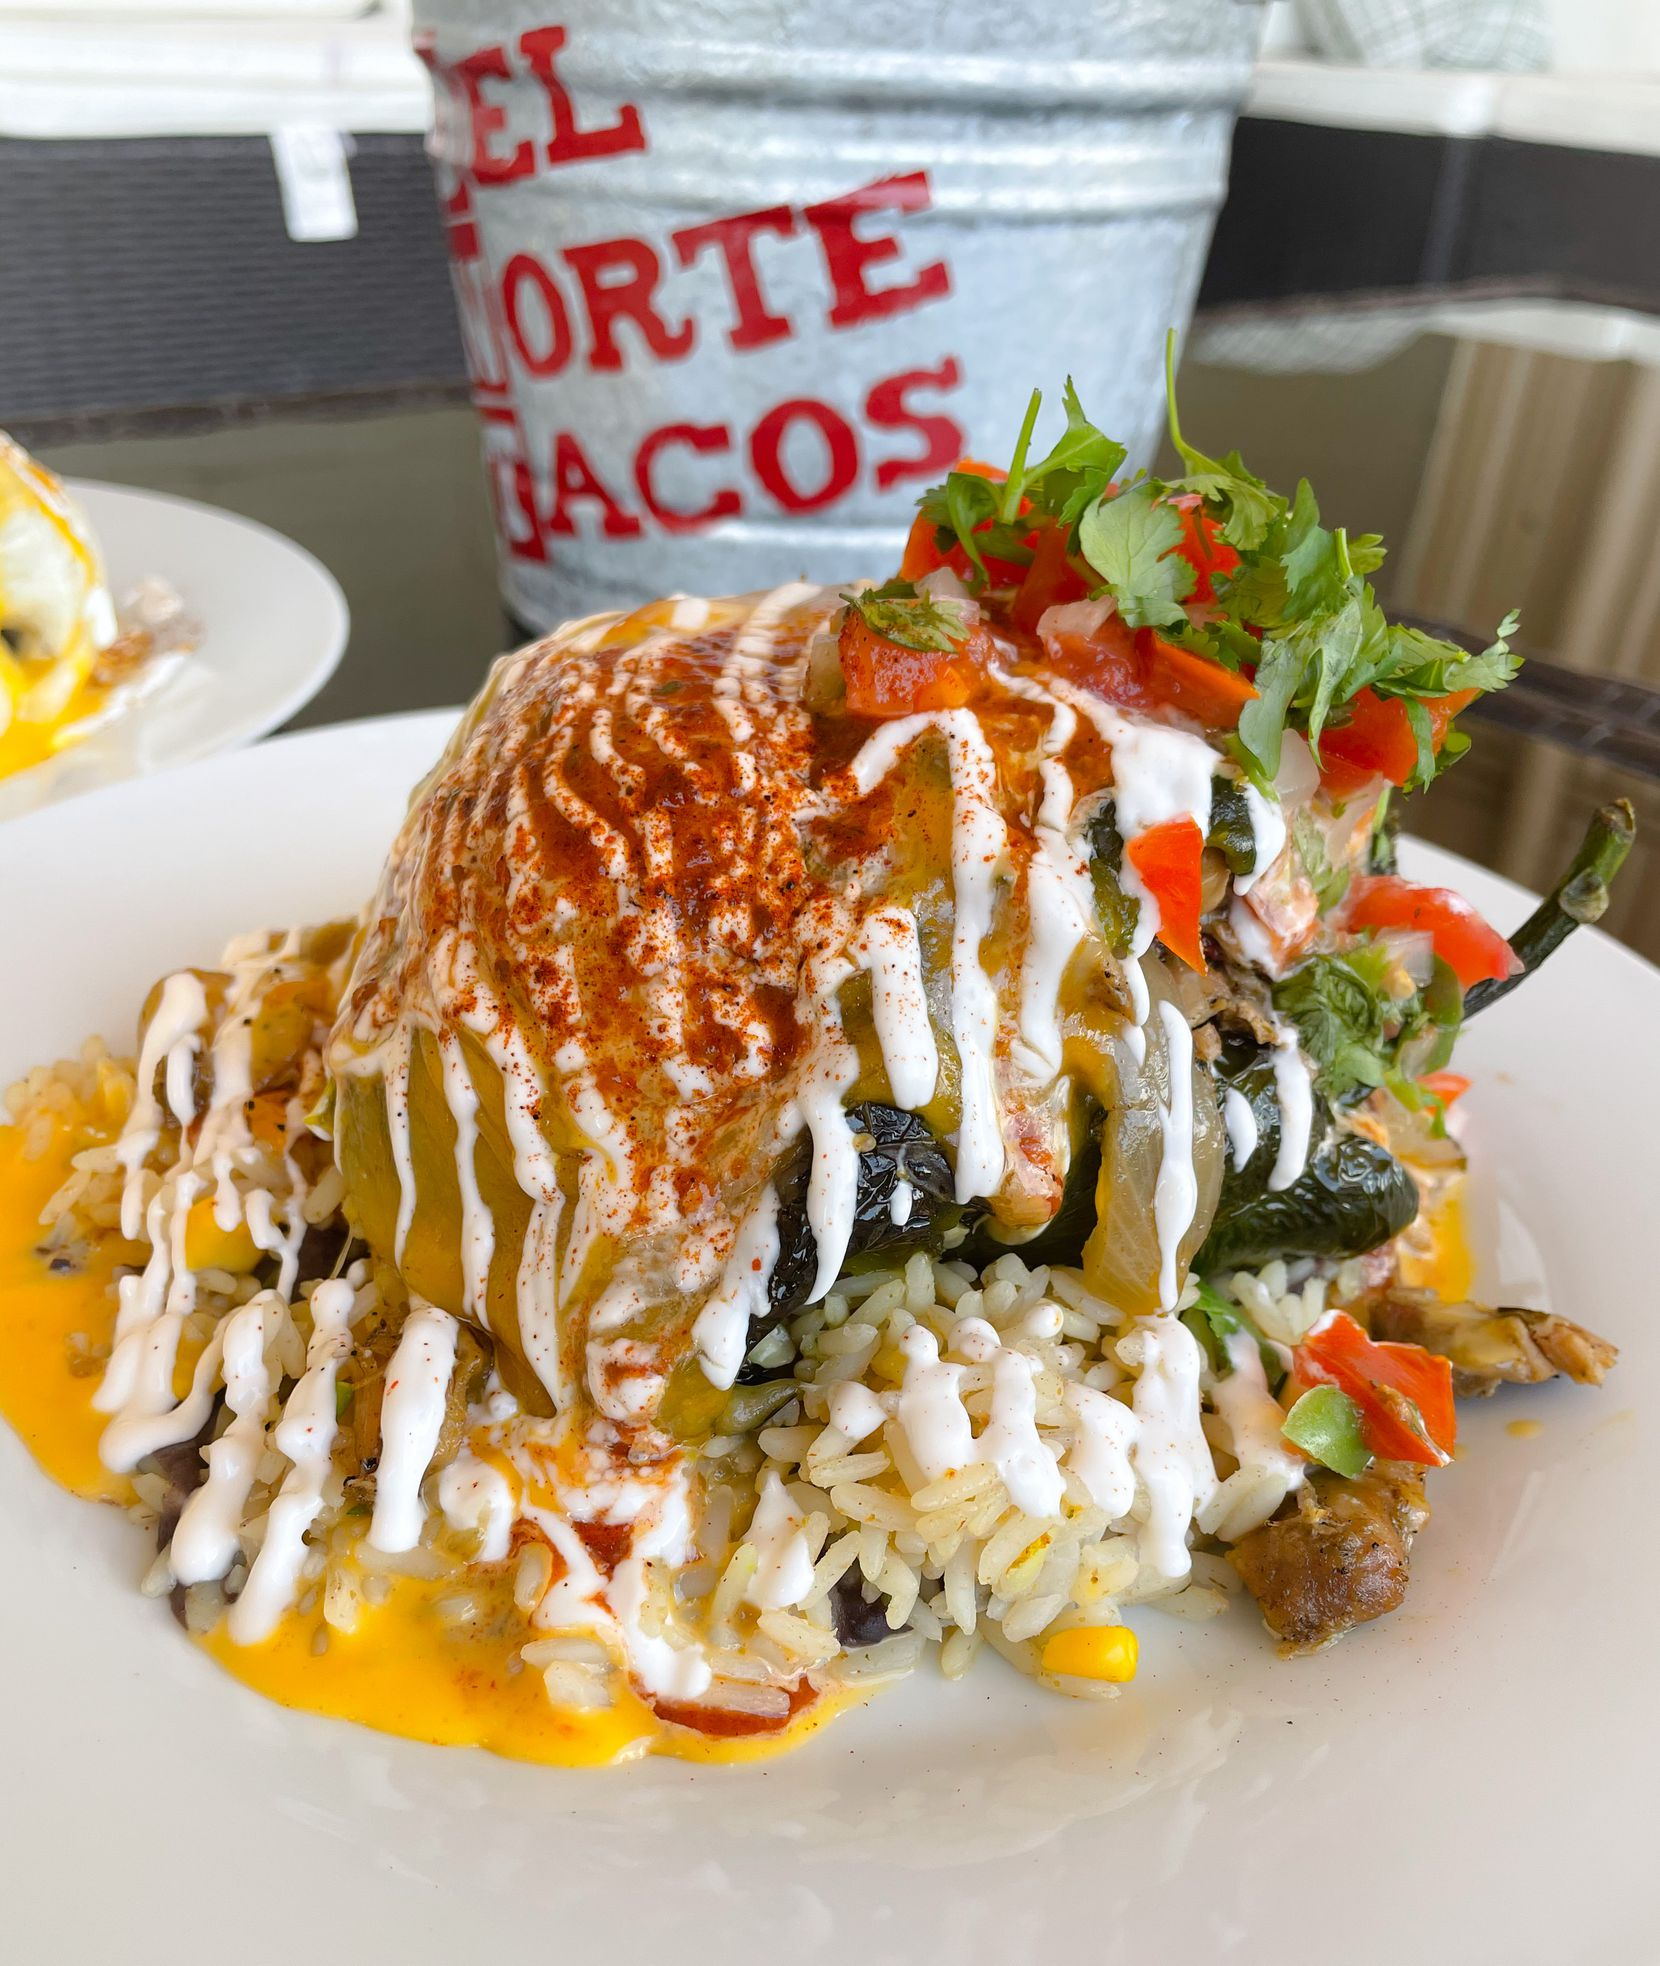 Del Norte Tacos in Godley, Texas, offers authentic Tex-Mex like chile relleno.